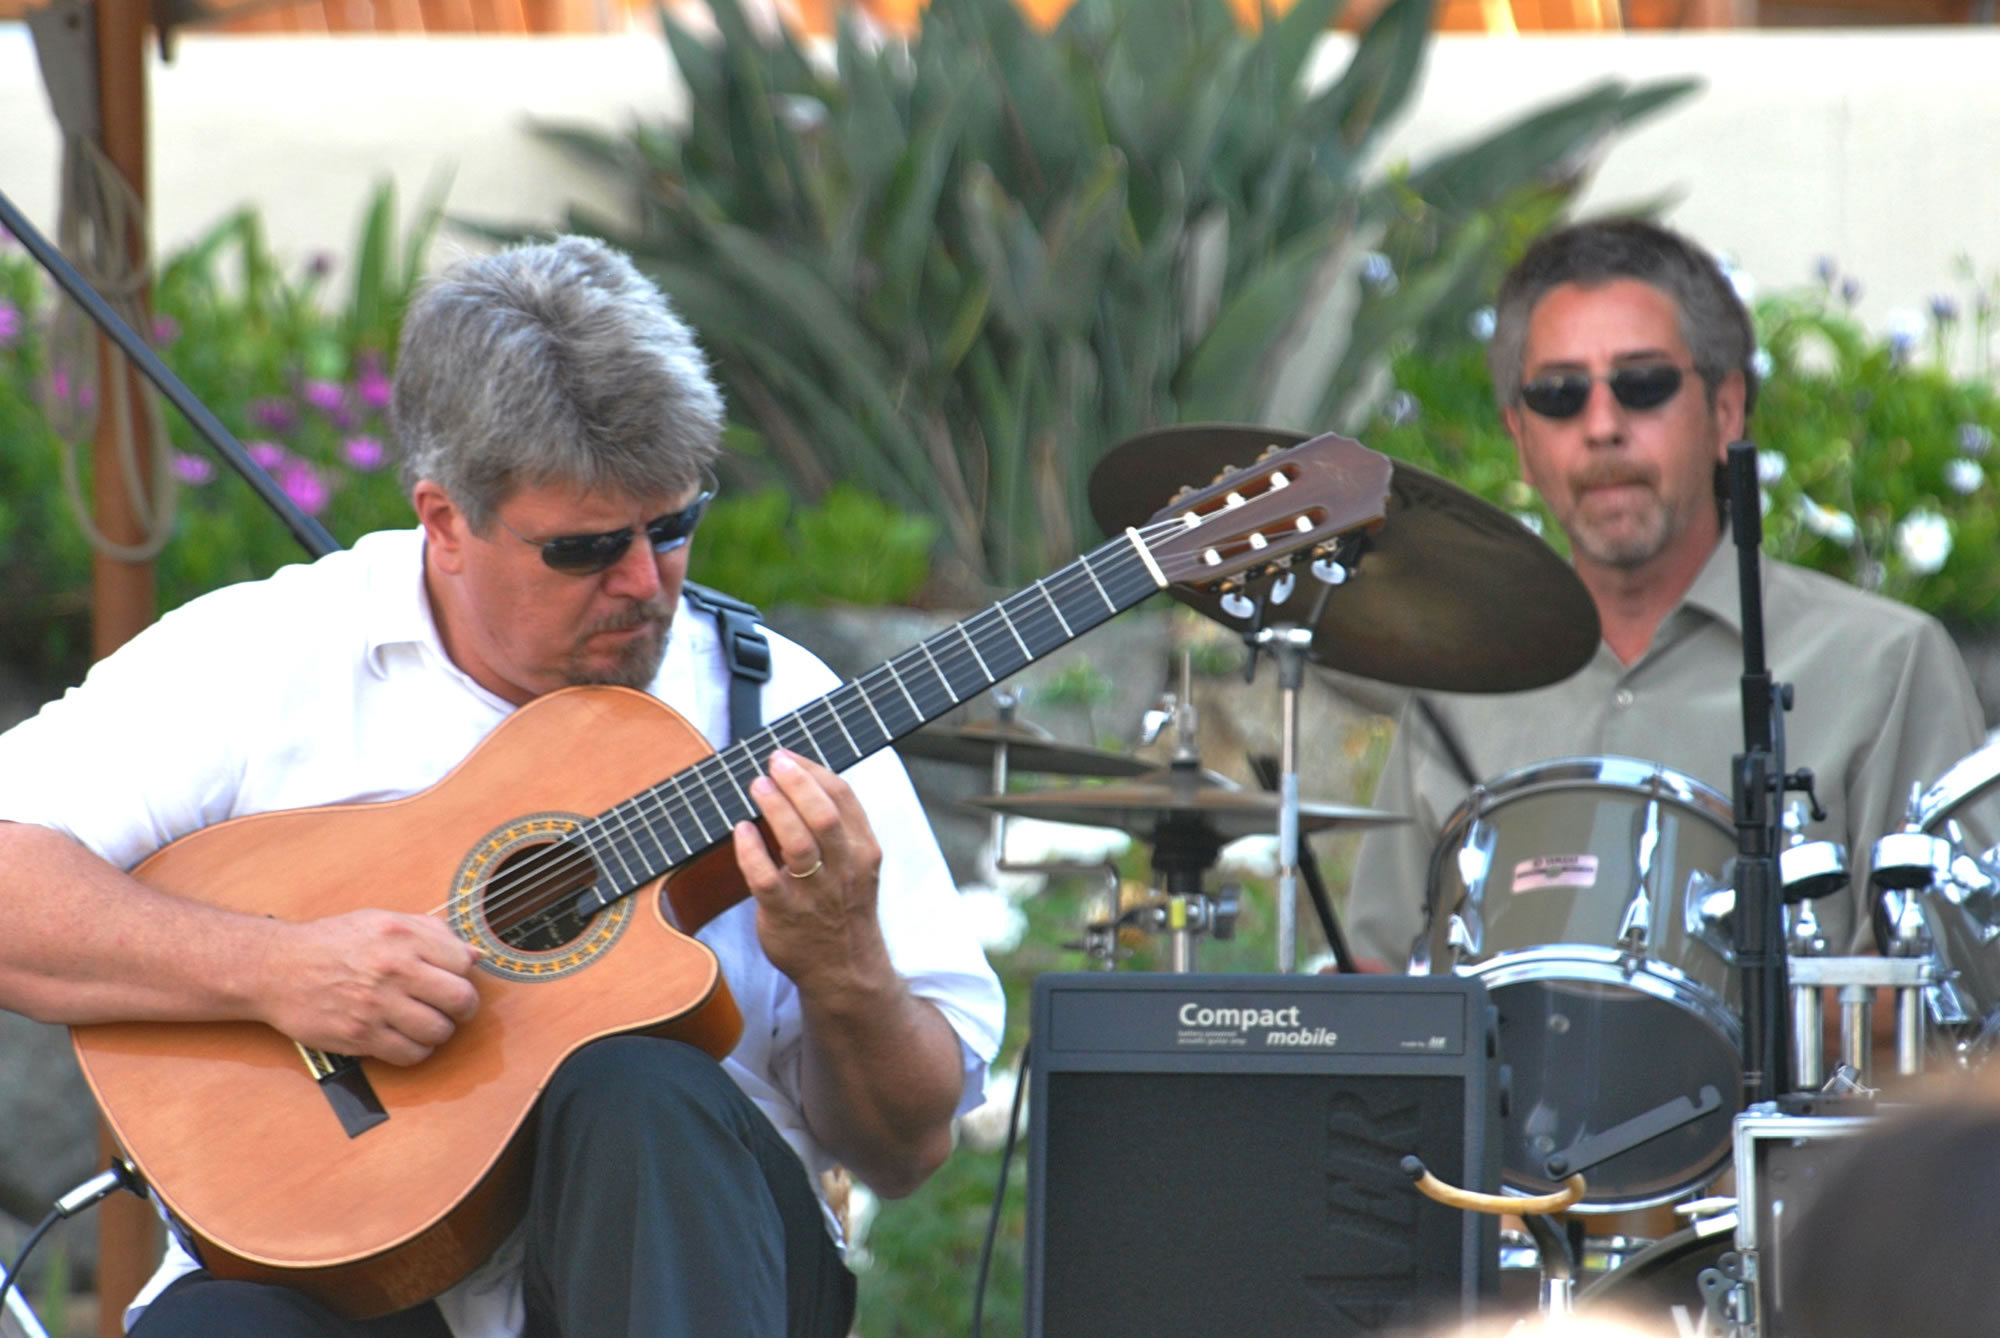 Concert on the Lawn, Peter and Kevin